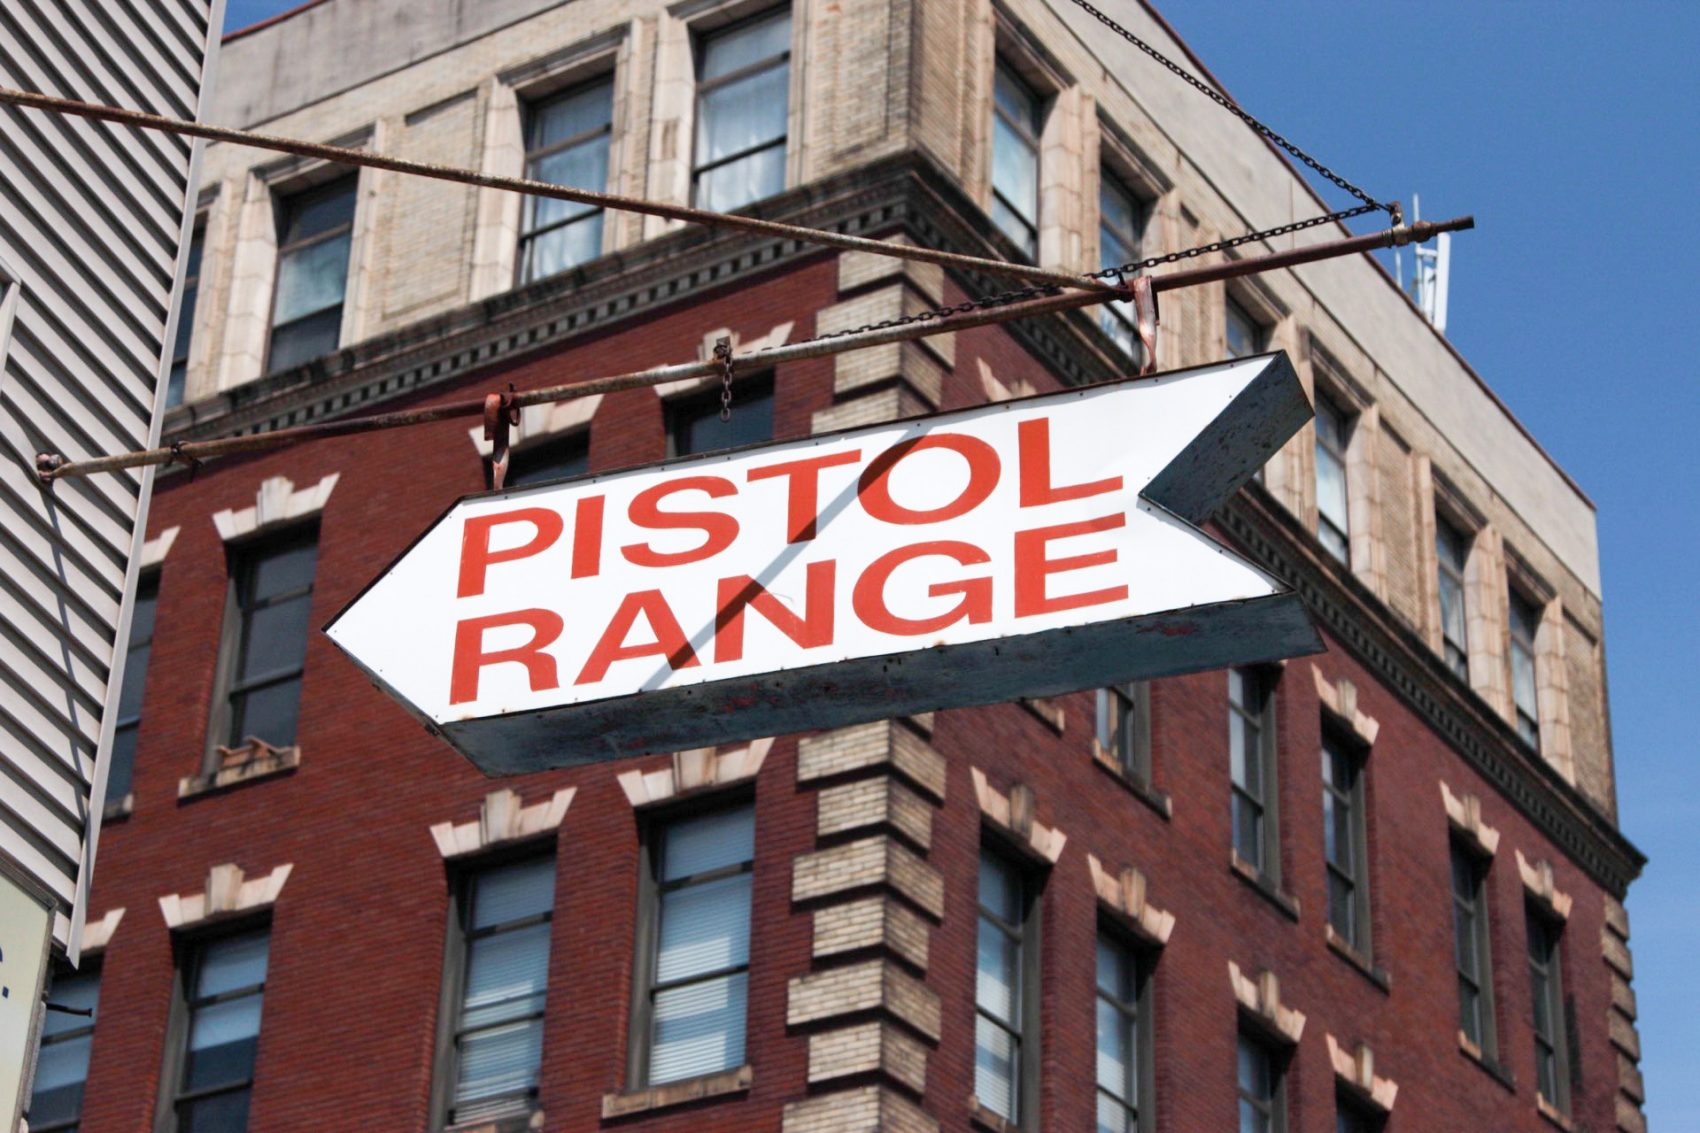 A sign on the corner of Spring Garden Street and North Percy Street points pedestrians to The Gun Range in North Philadelphia. (Dean Russell/Here & Now)